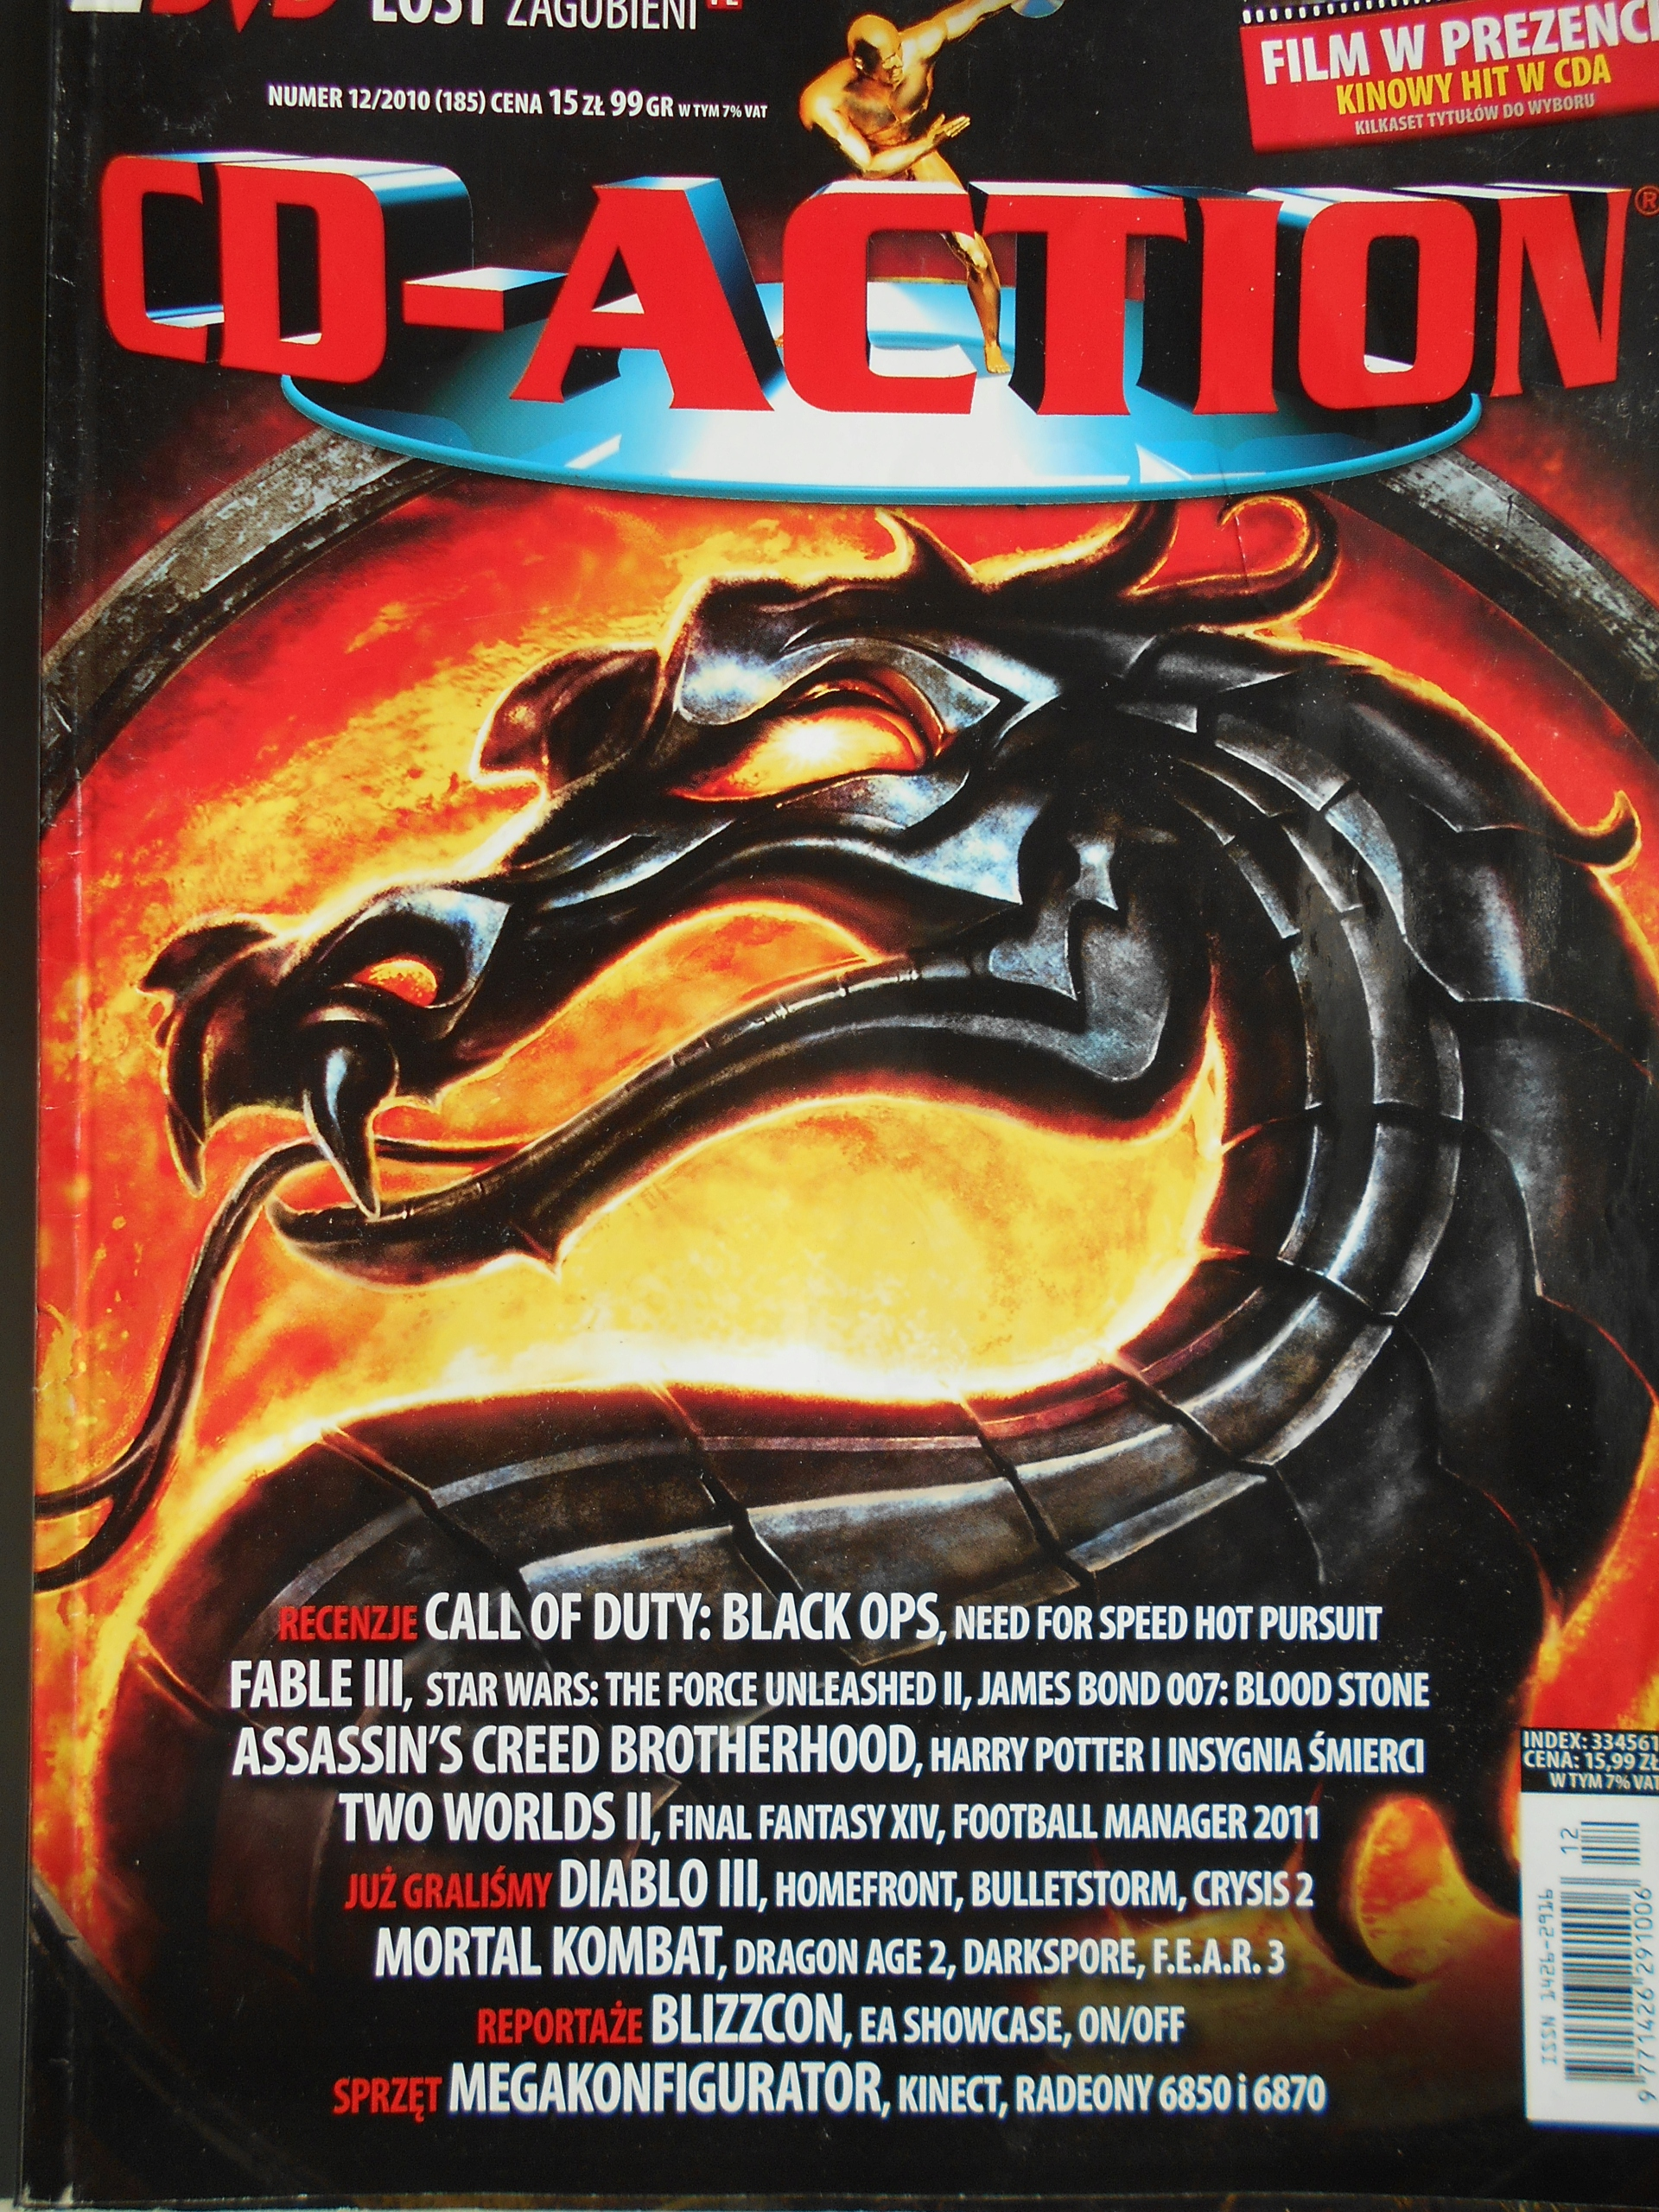 CD-ACTION * NR 12 / 2010